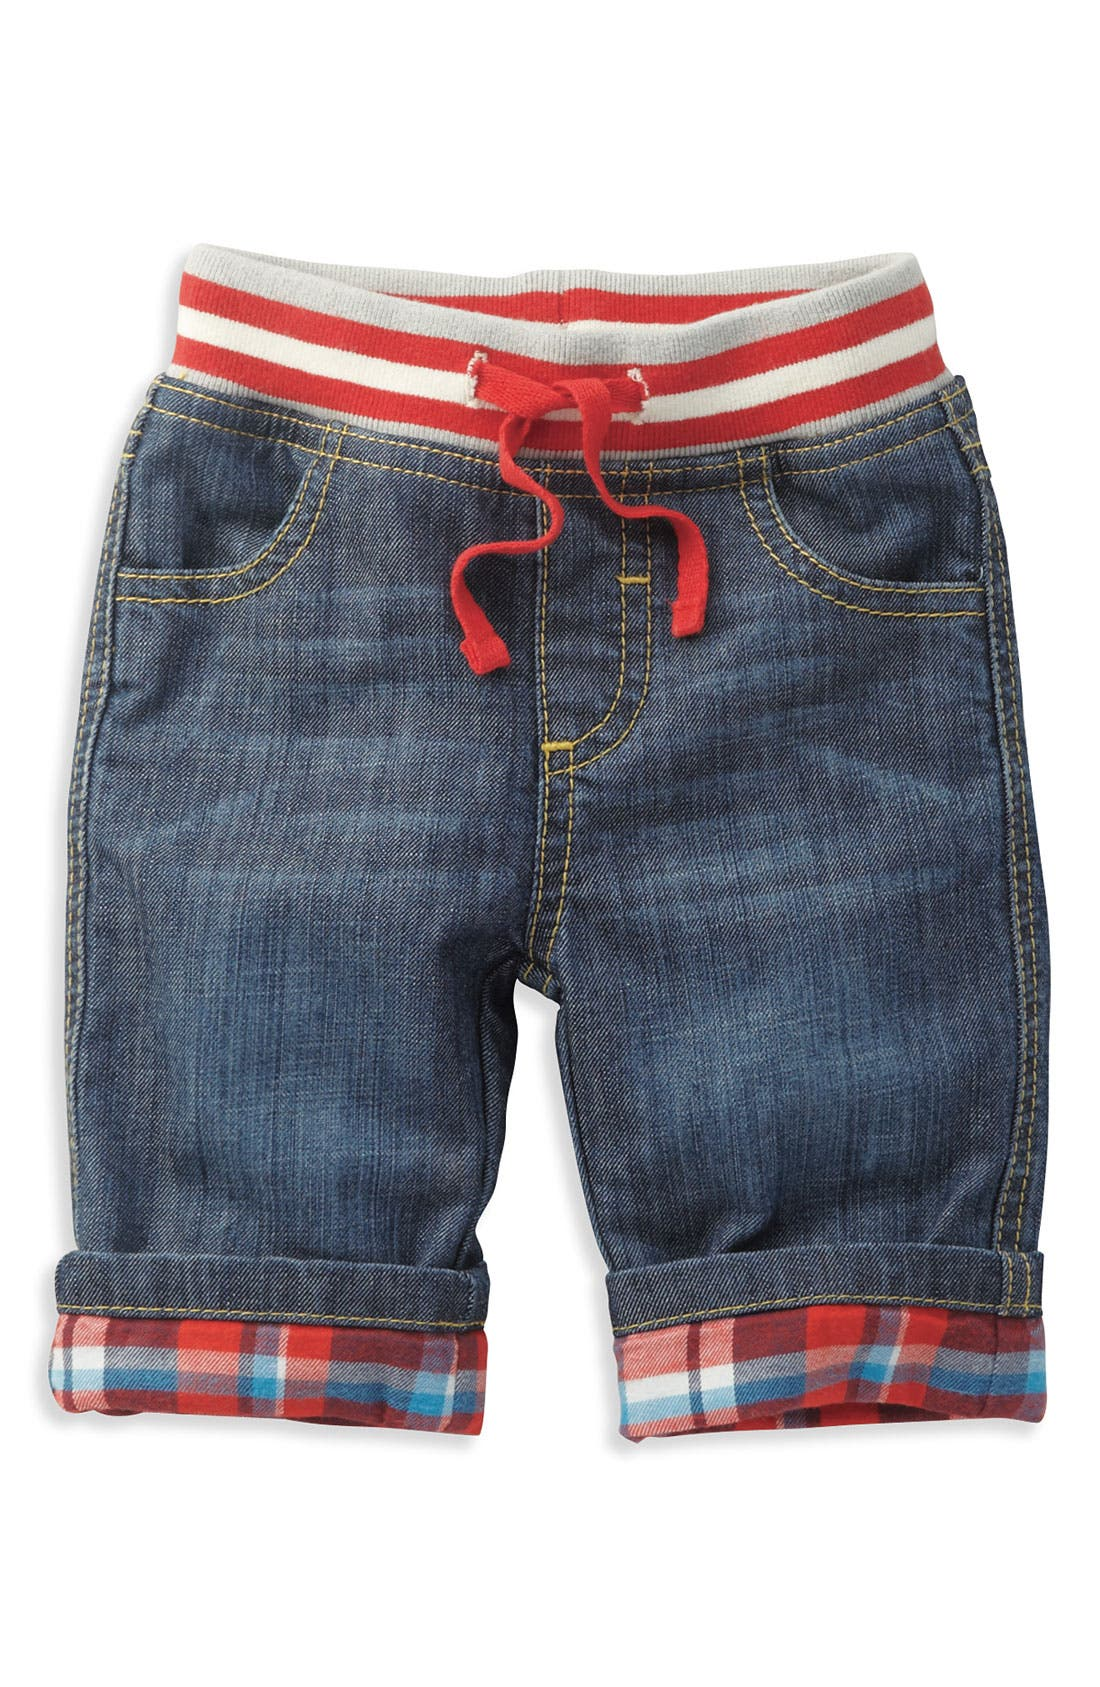 Main Image - Mini Boden Lined Jeans (Infant)